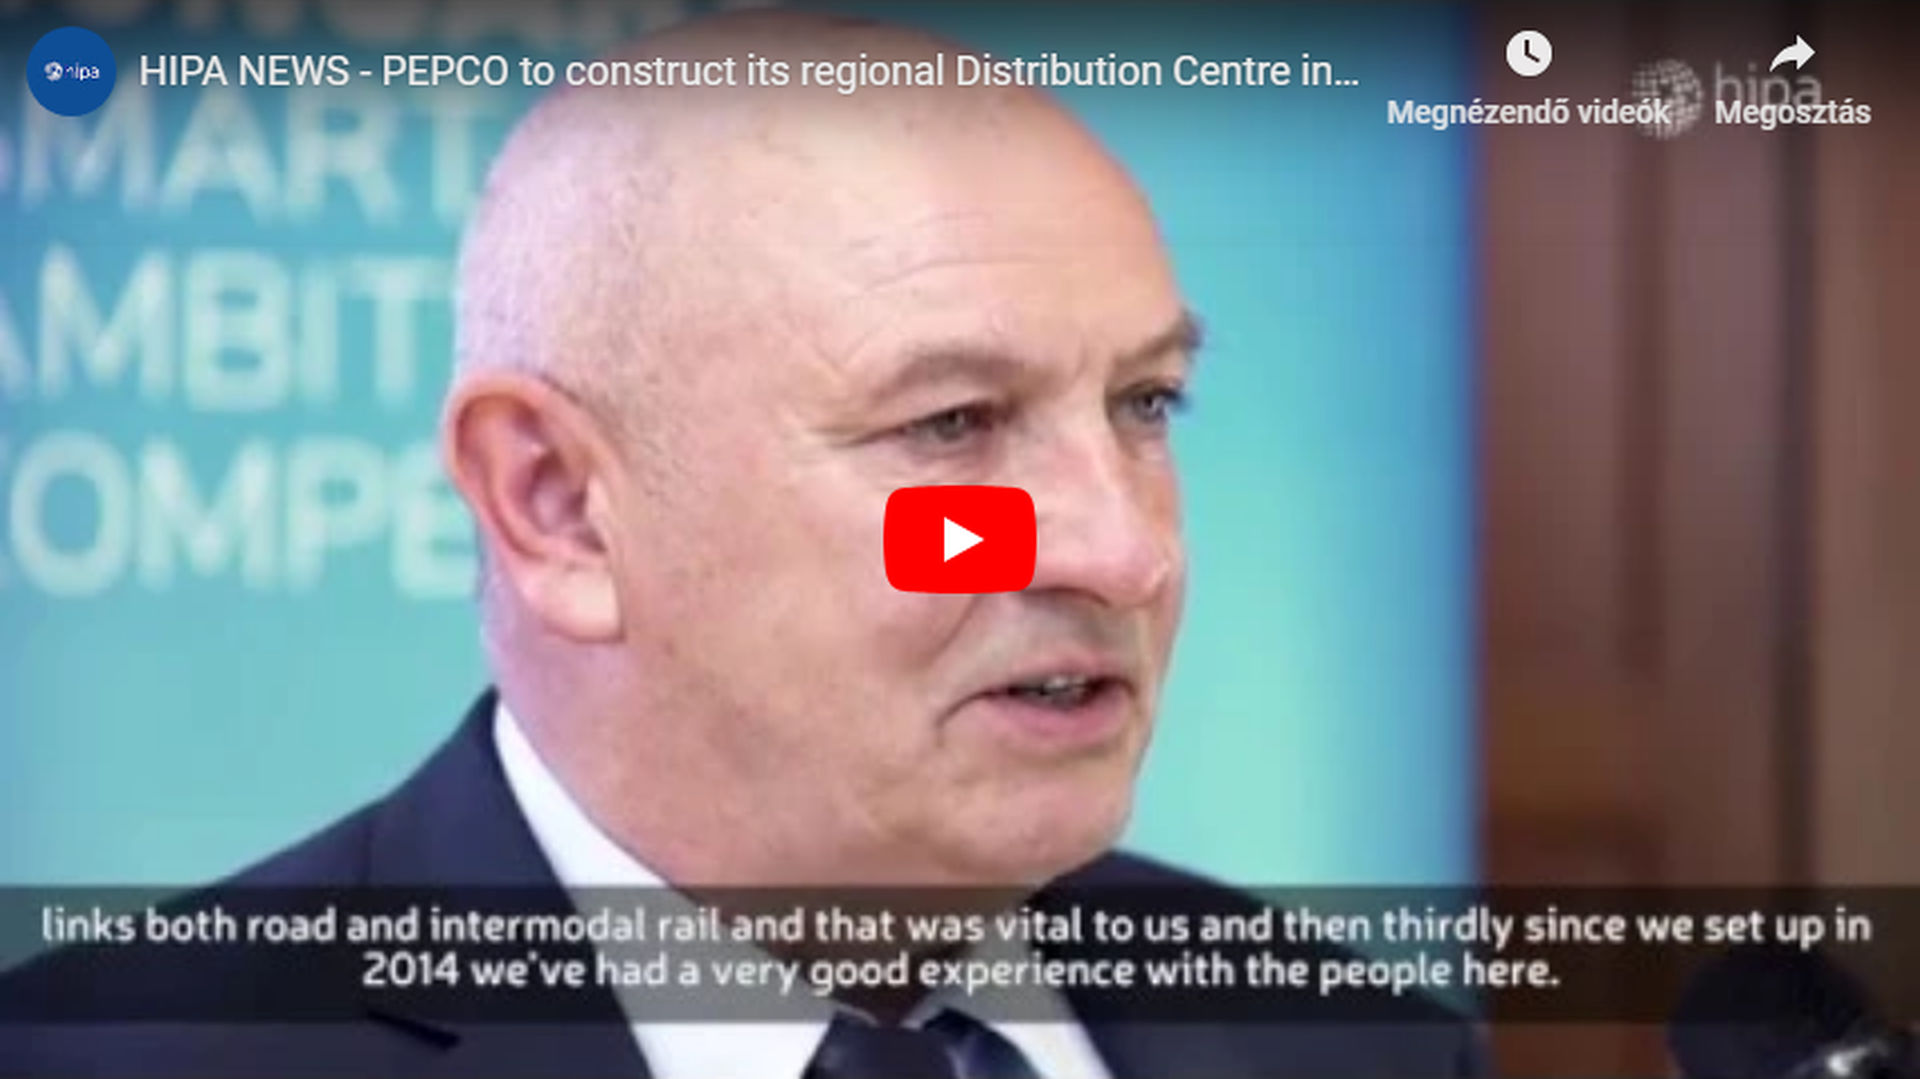 PEPCO to construct its regional Distribution Centre in Hungary - VIDEO REPORT